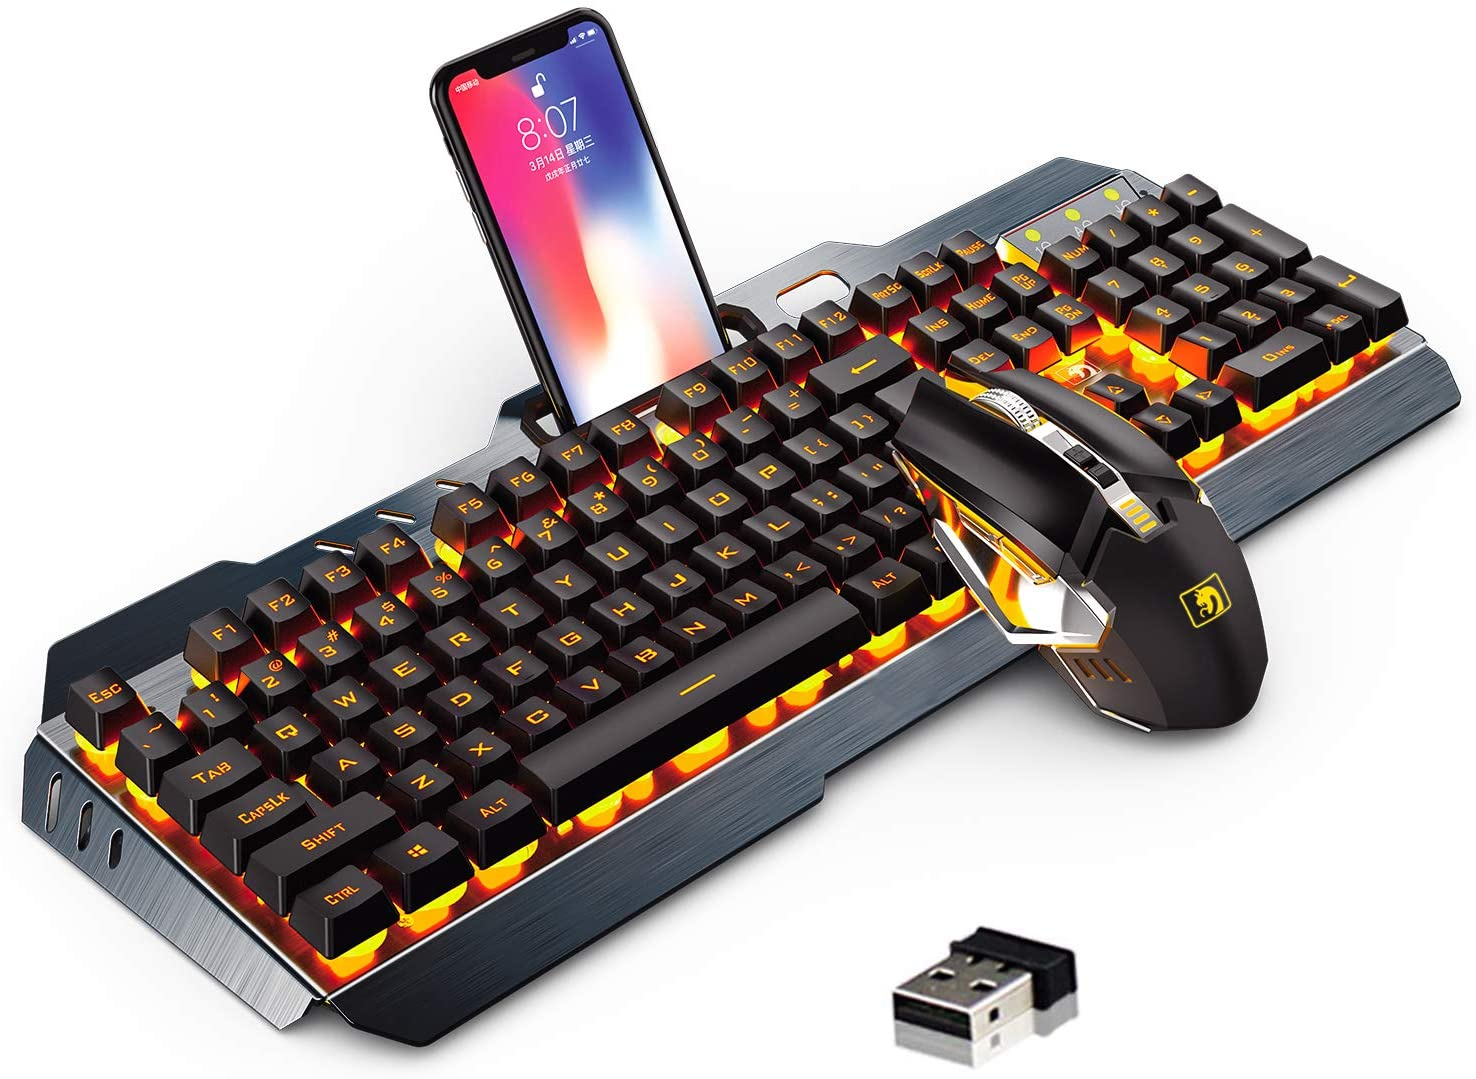 132 Key Waterproof Mechanical Keyboard Aluminum Alloy Case 18 Kinds of Lights with Hand Support Bracket Dual USB Interface QOUP Game Wired Keyboard